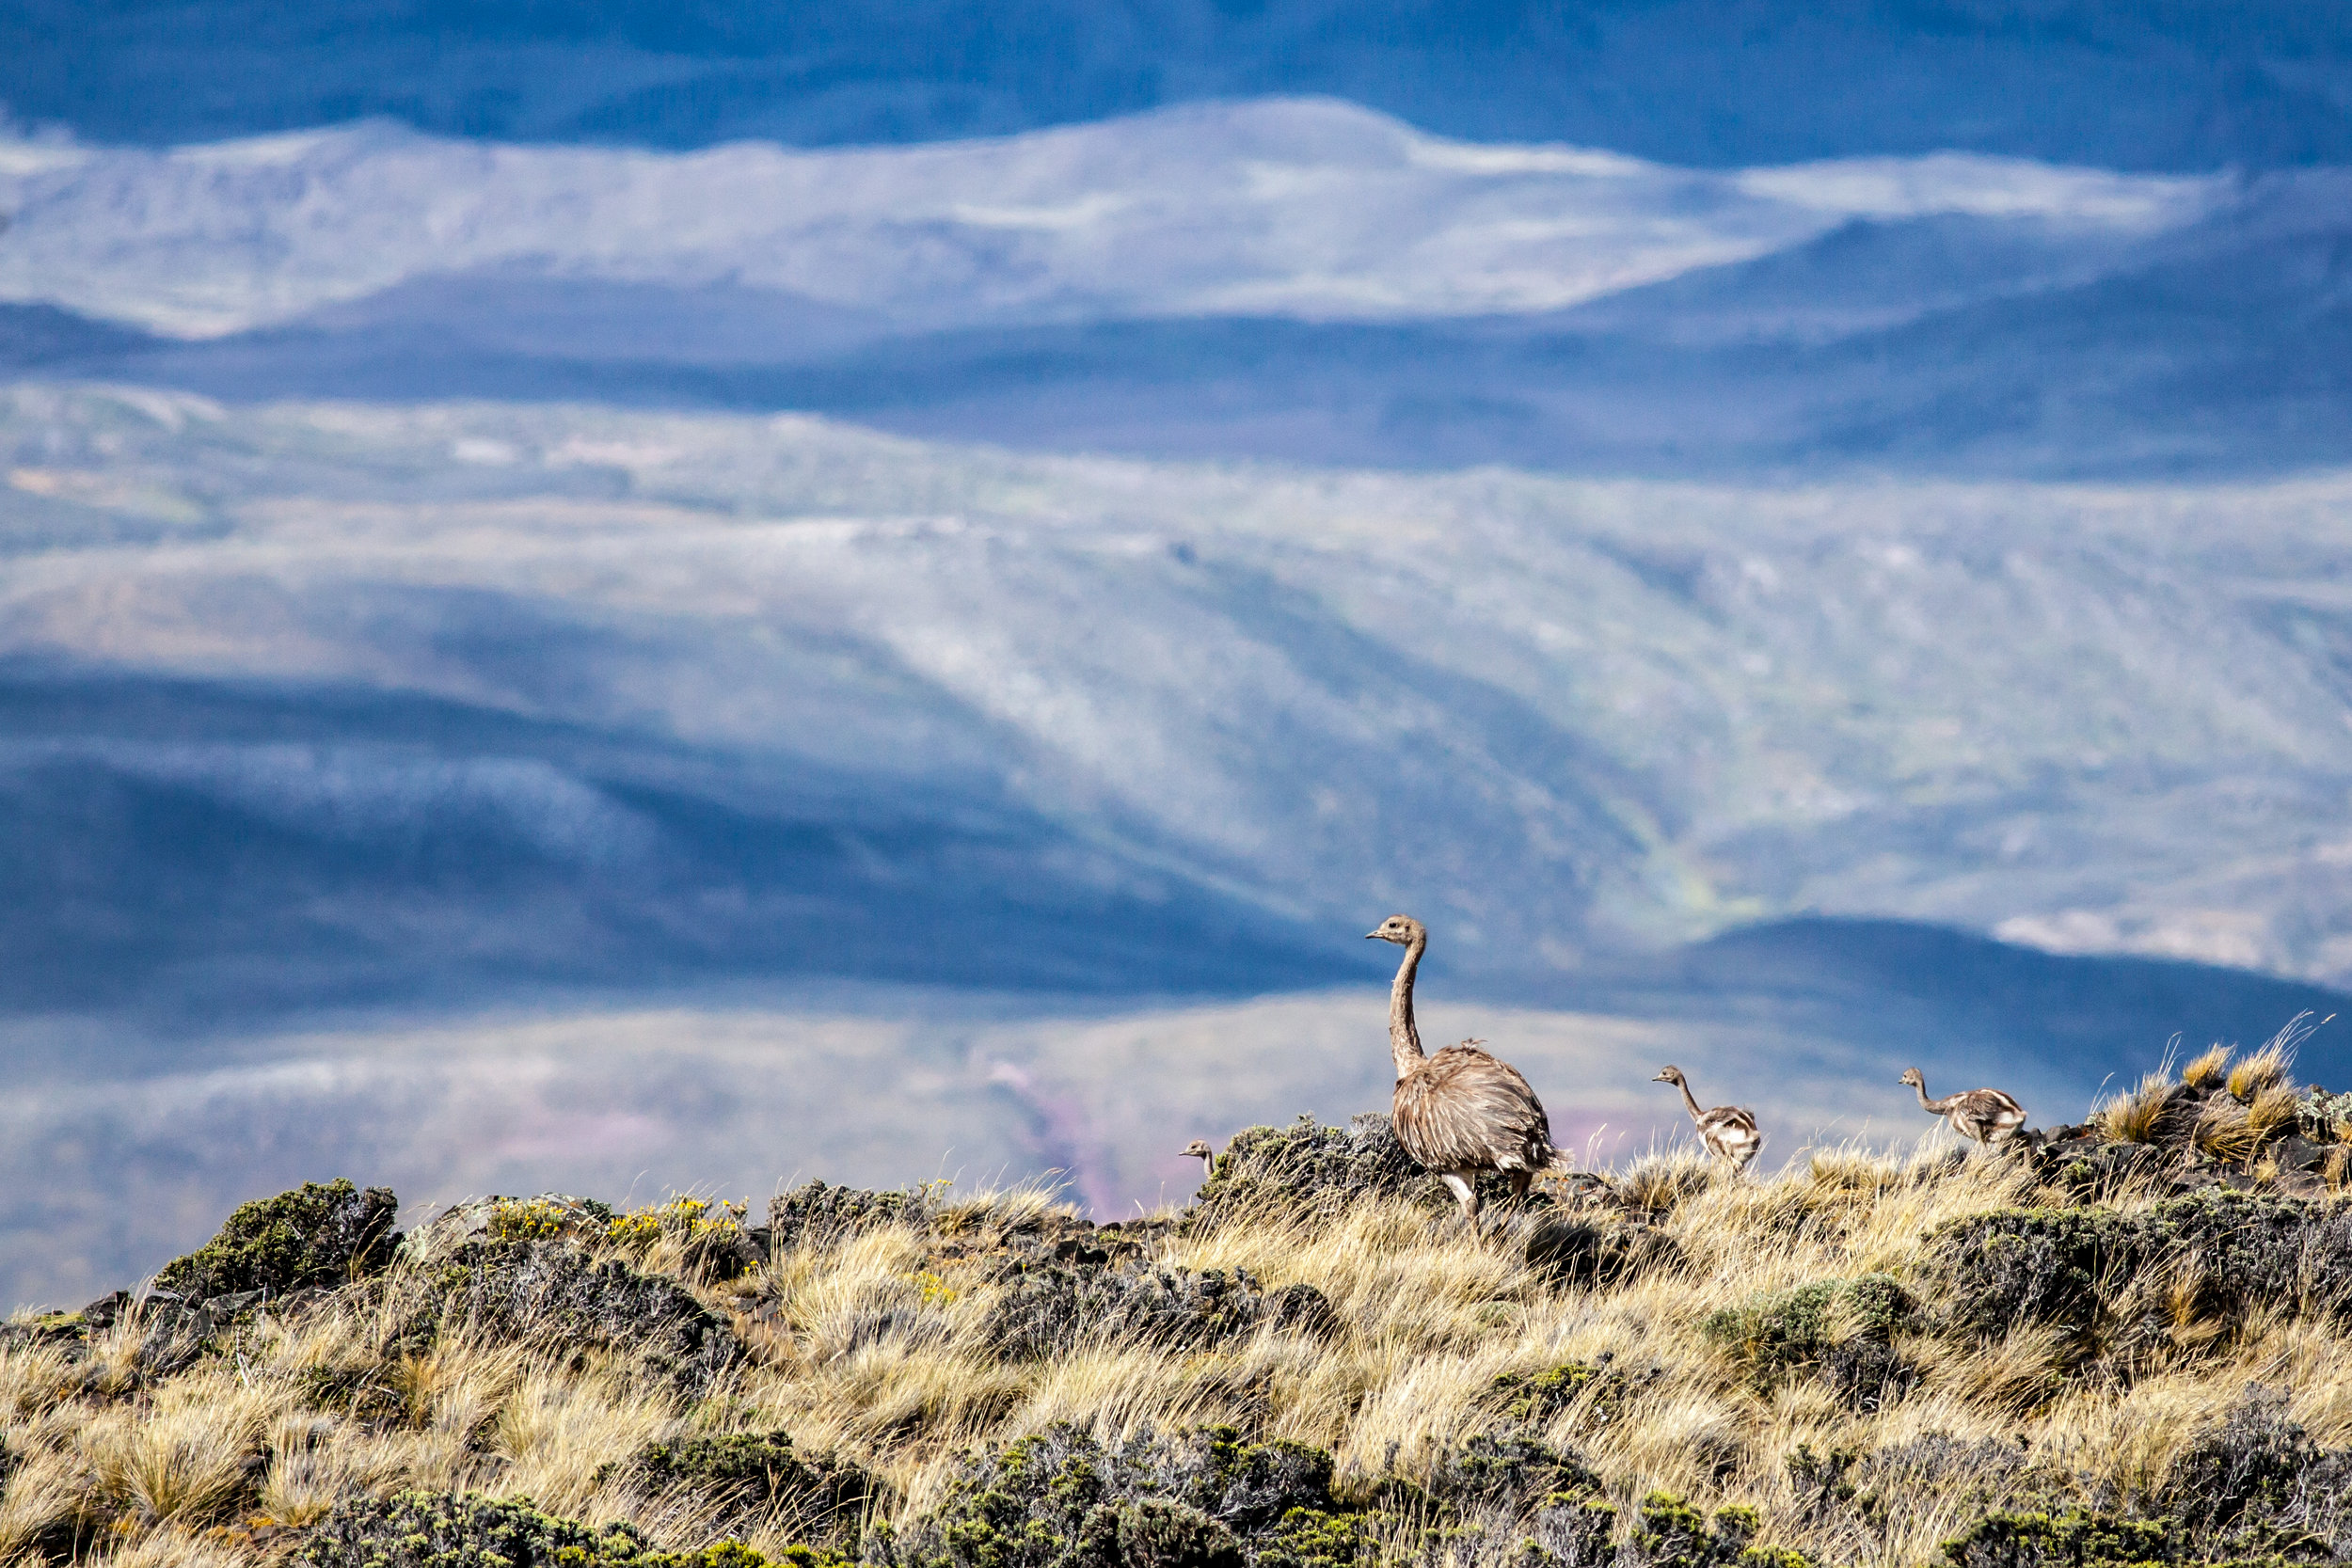 lesser rhea (Rhea pennata) - A male lesser rhea, or Darwin's rhea, or ñandú, with his chicks at the future Patagonia National Park. Tompkins Conservation created a breeding center to restore the populations of these large flightless birds that thrive in the Patagonian steppe ecosystem.